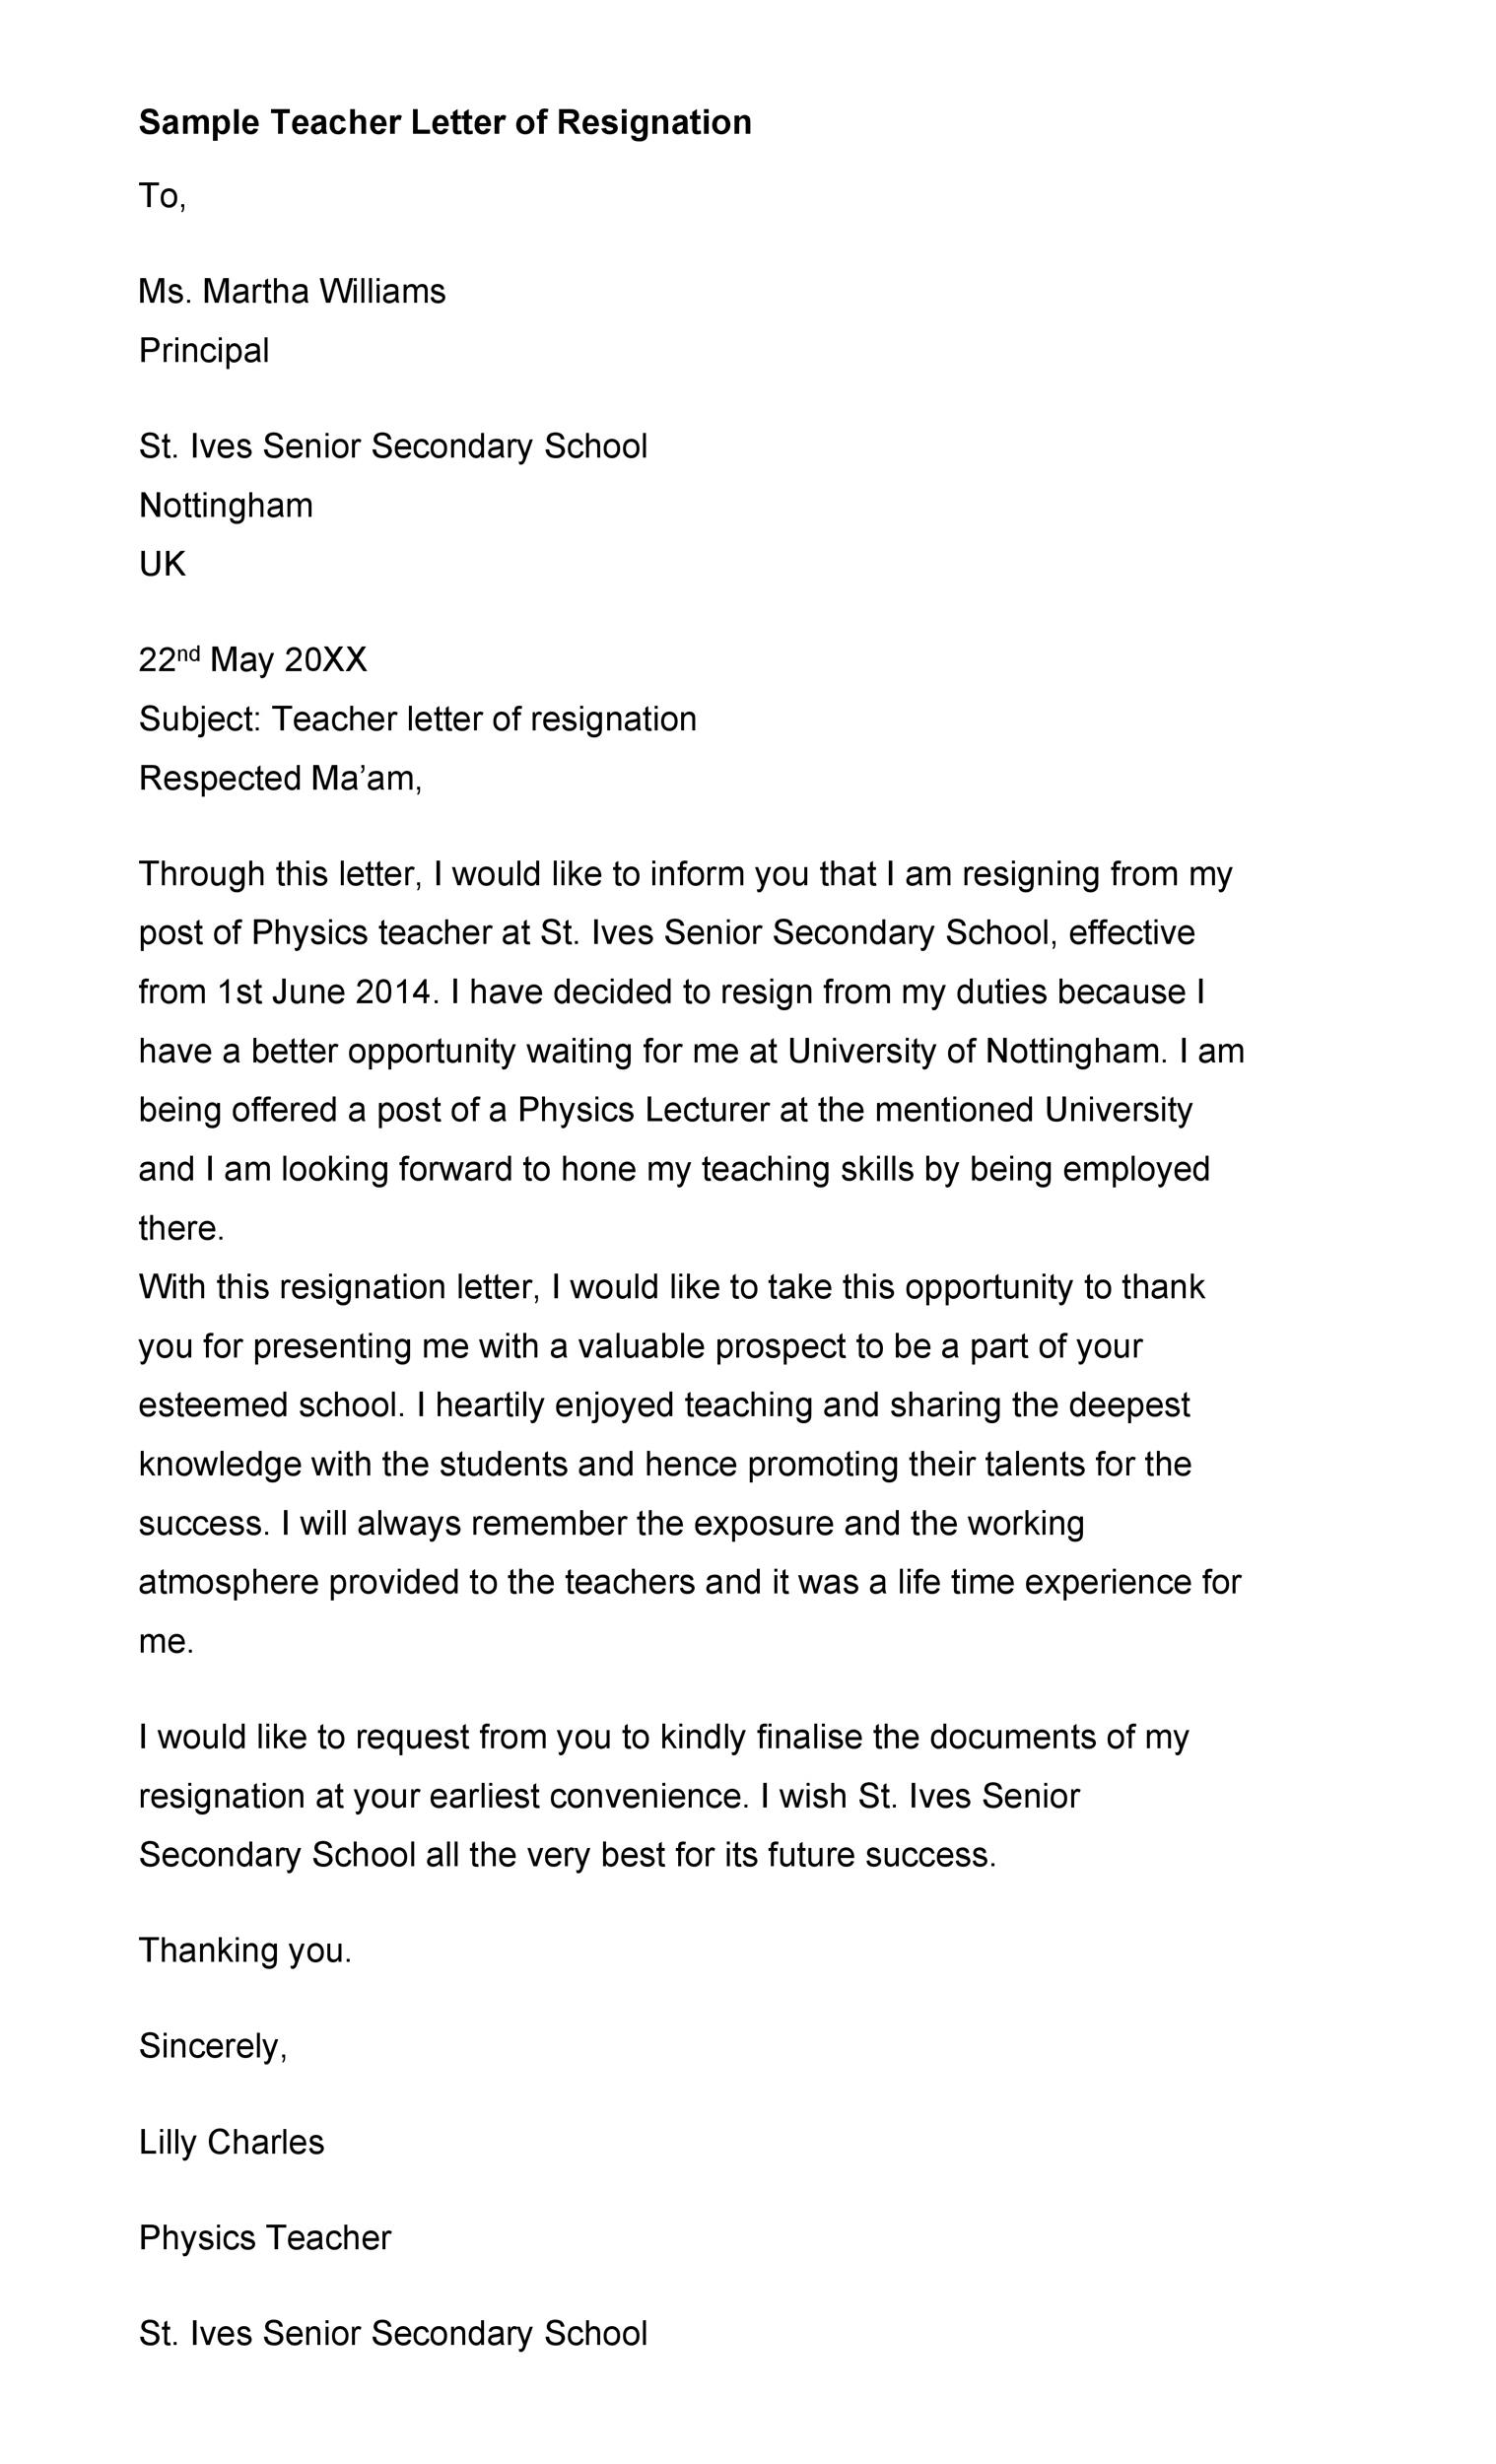 Free teacher resignation letter 08